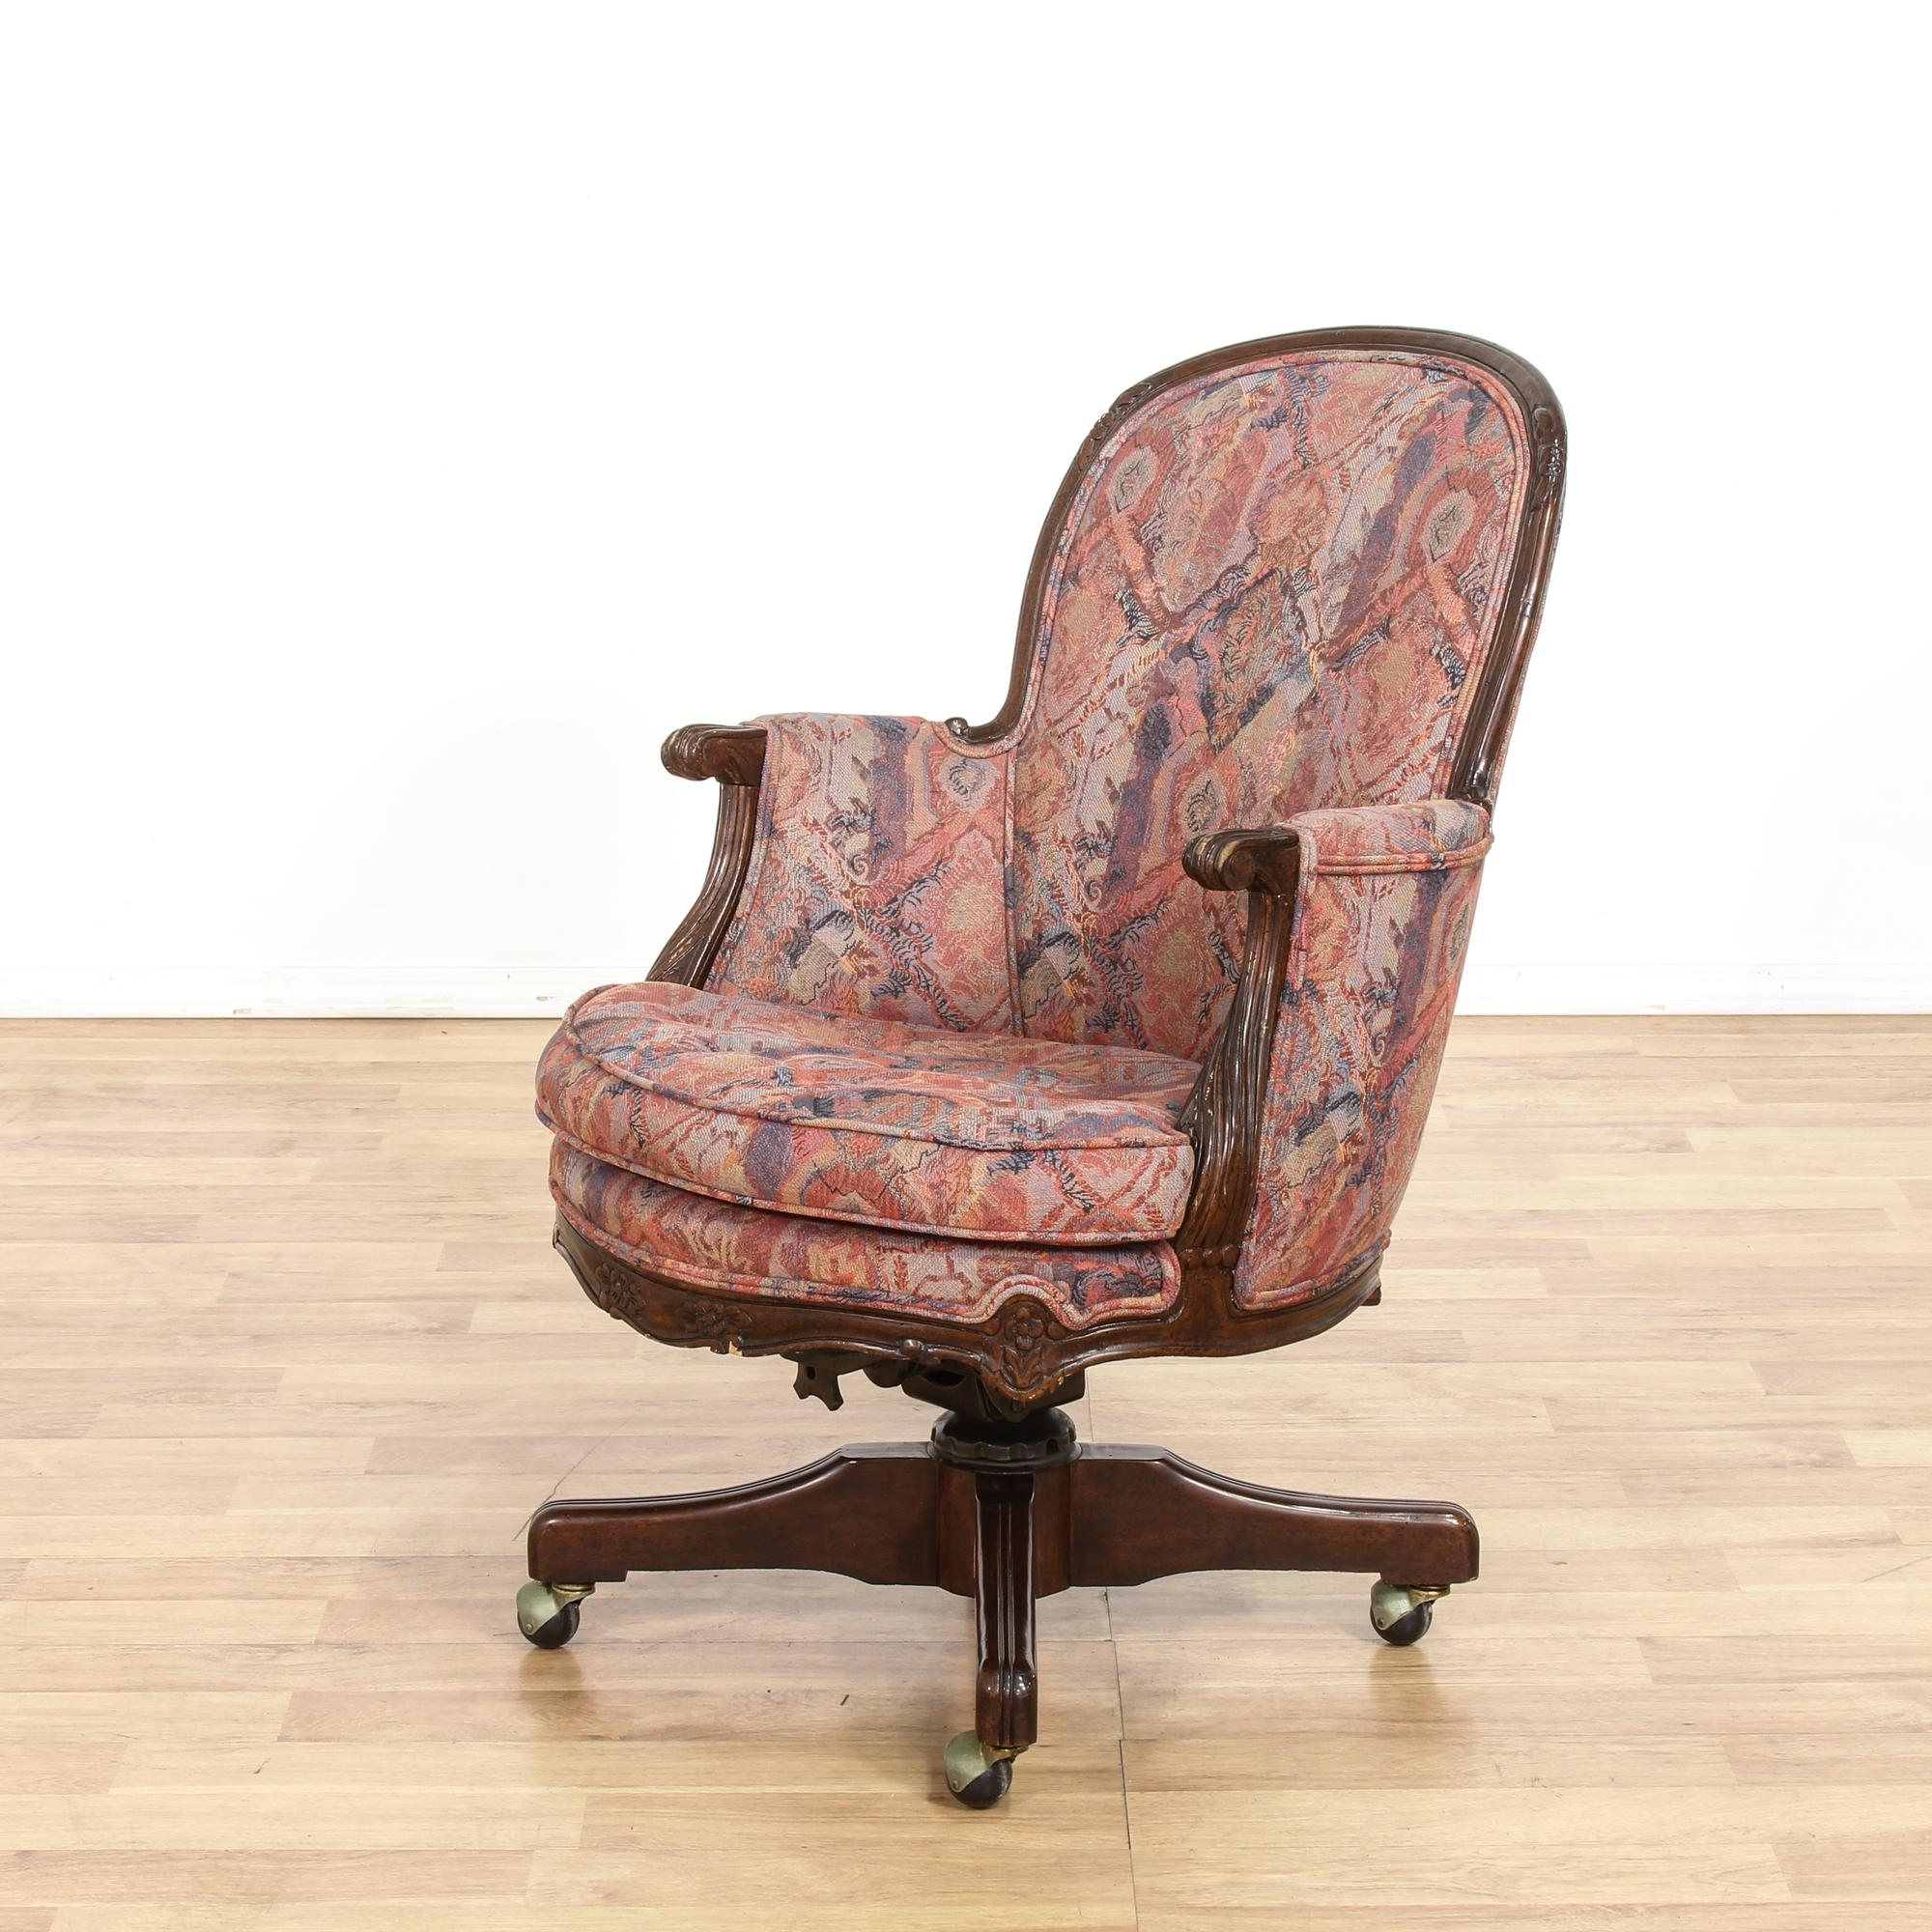 This Desk Chair Is Upholstered In A Durable Bohemian Print Fabric With Regard To Famous Upholstered Executive Office Chairs (View 13 of 20)